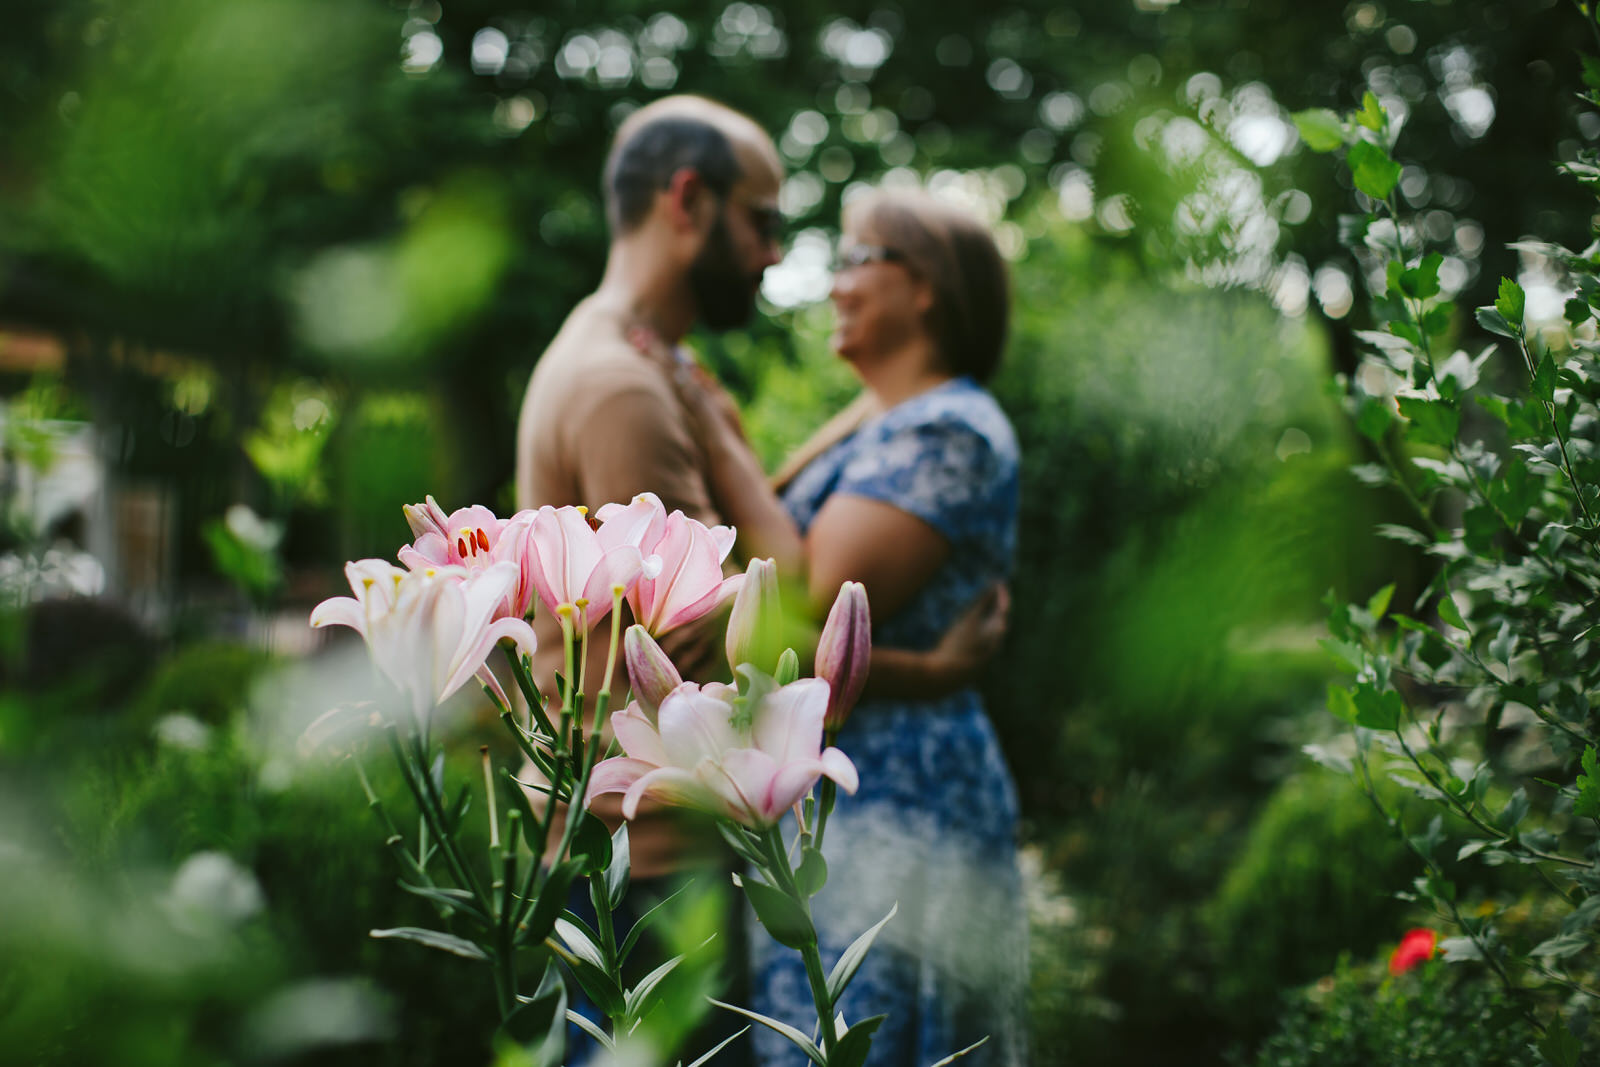 Garden_Proposal_Portraits_Tiny_House_Photo_Nashville.jpg